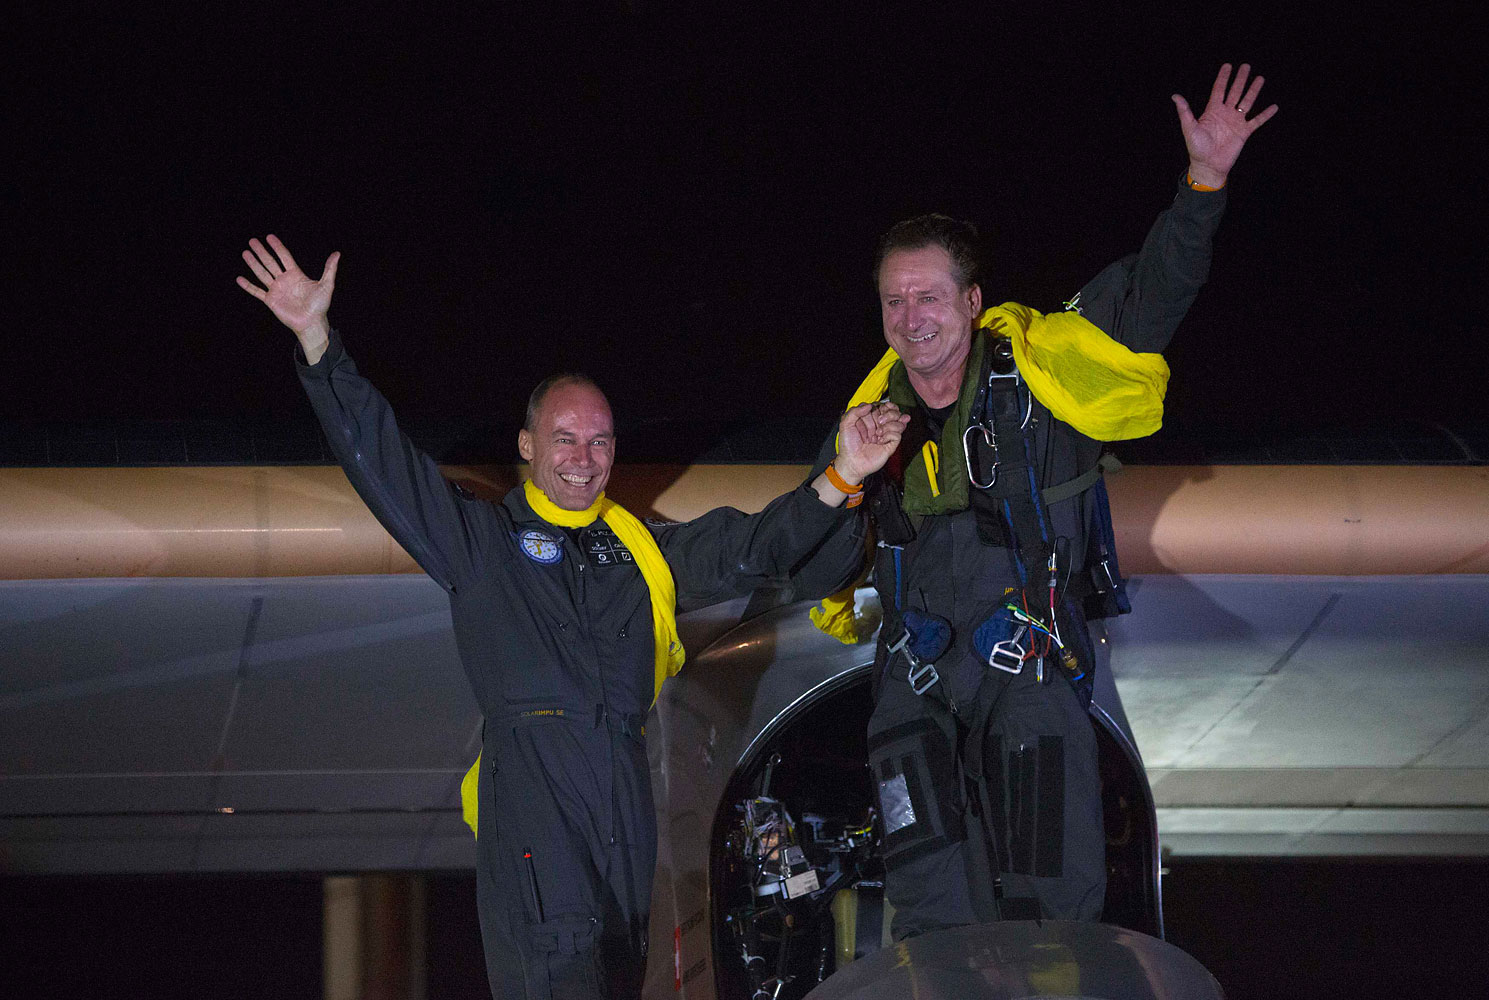 From left: Bertrand Piccard and Andre Borschberg after Solar Impulse lands at JFK airport in New York on July 6, 2013. The airplane touched down in New York City late on Saturday, completing the final leg of an epic journey across the United States that began over two months ago.